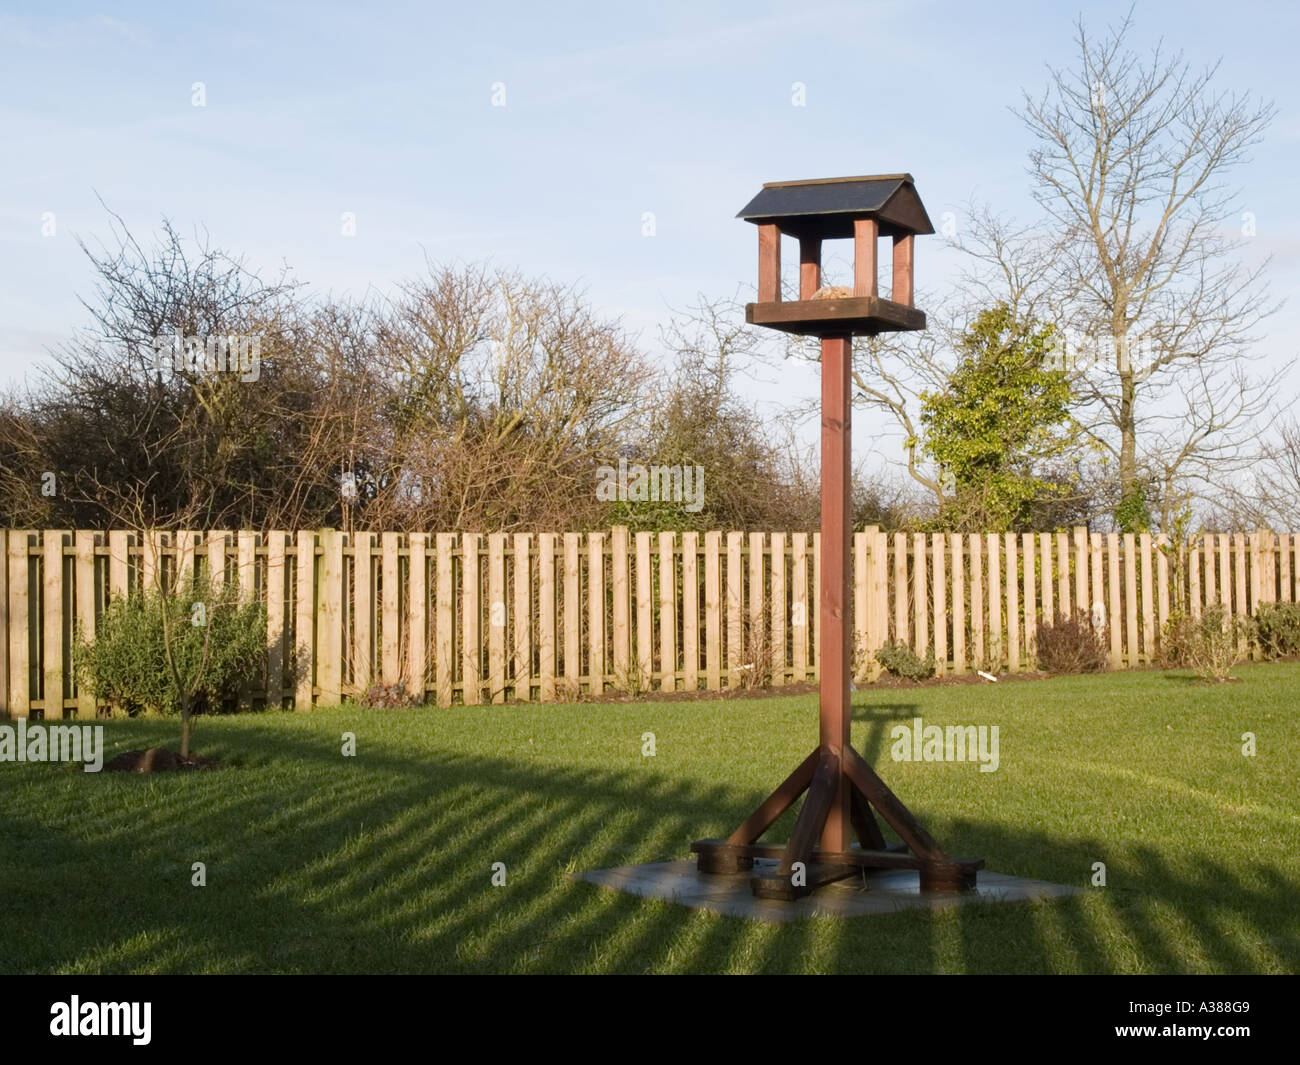 BIRD TABLE in a garden with fence shadow across lawn from low winter sun. Britain UK - Stock Image